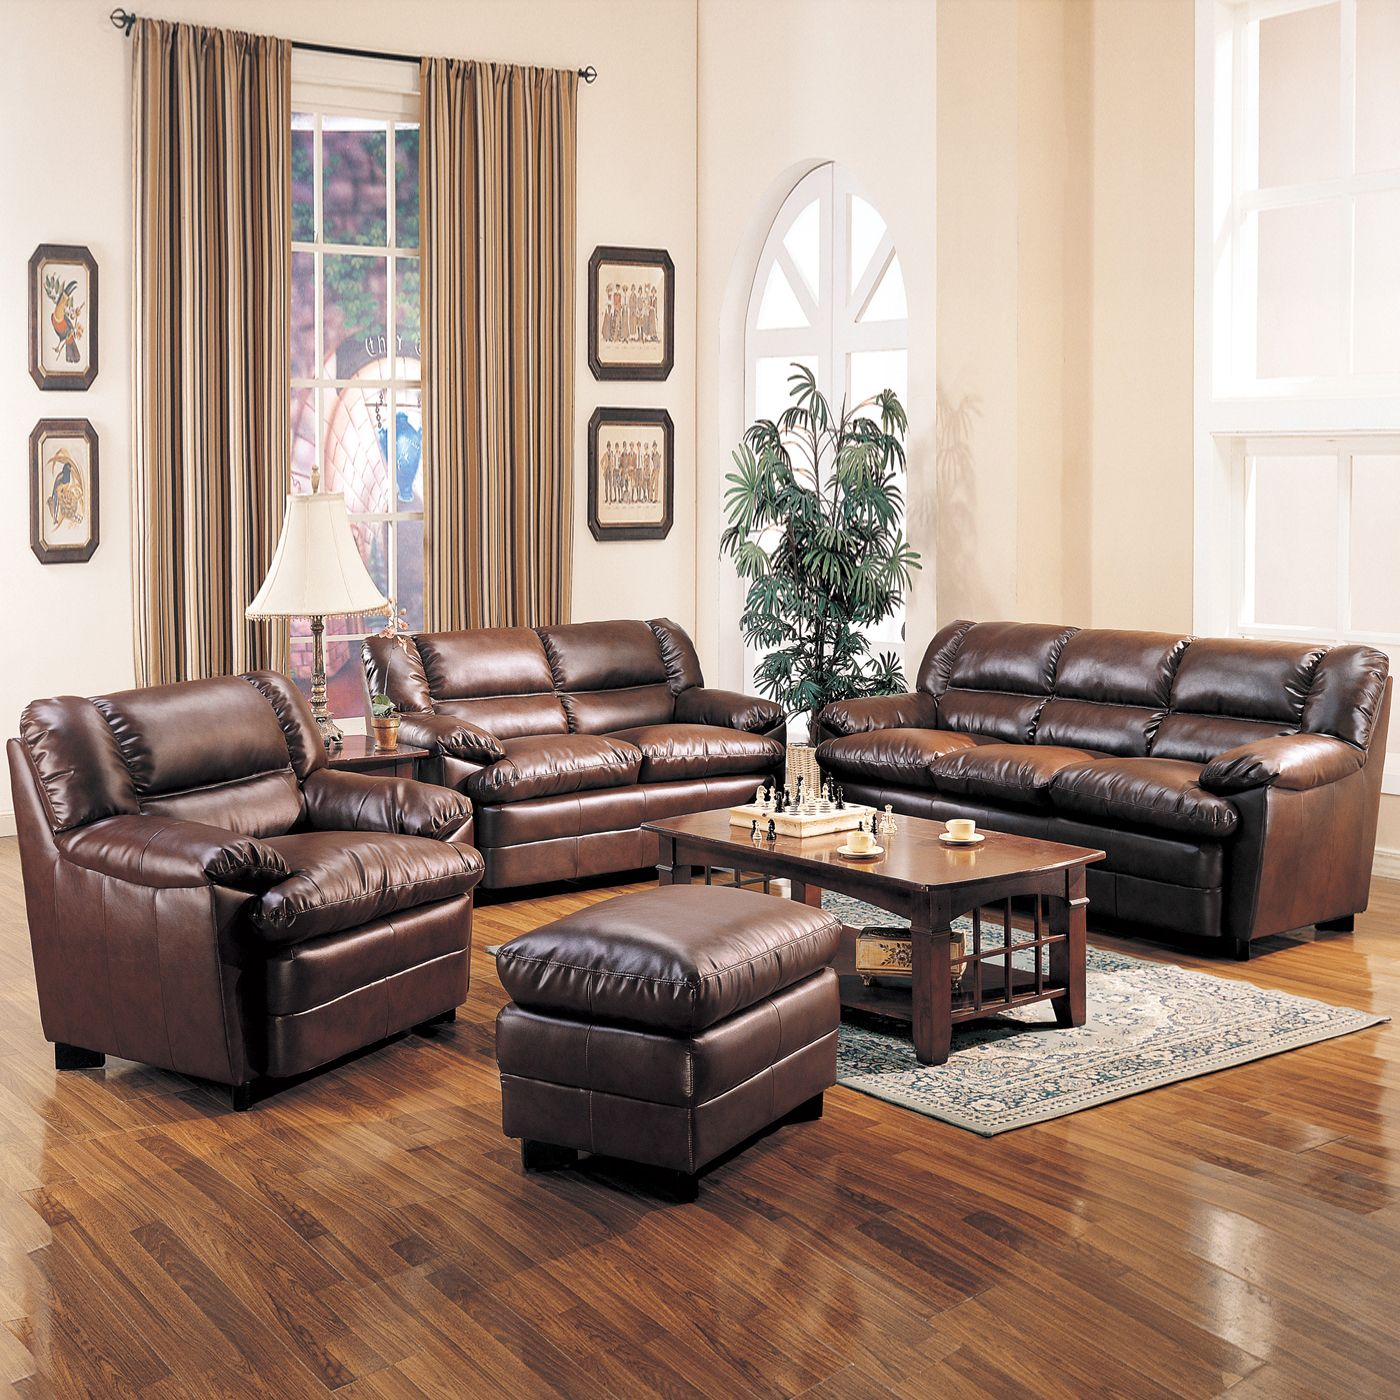 Wall Colors For Brown Leather Furniture Cream Living Room Sets Vintage Living Room Set Up With